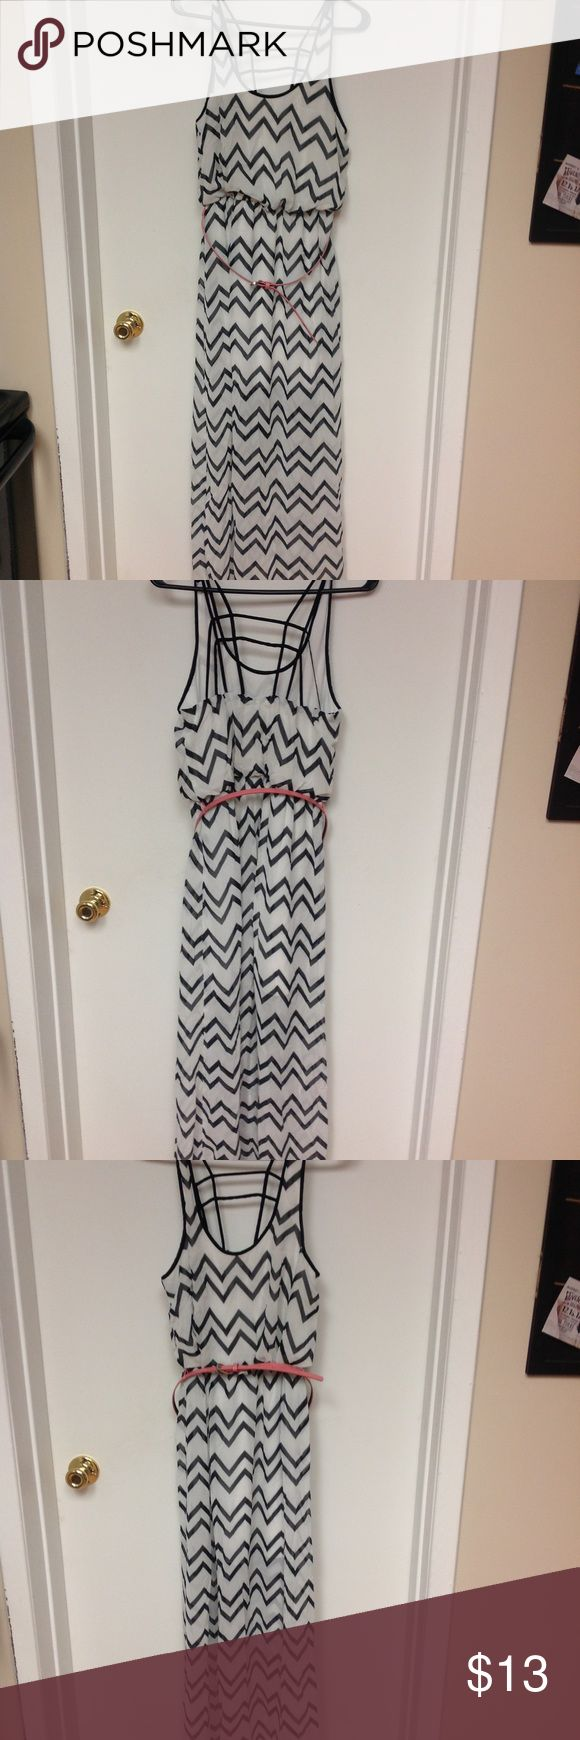 """White/black chevron maxi dress White/black chevron maxi dress. Cute back strappy design. Salmon colored mini belt comes with but can also be worn without. Cinched just under boob area. Also for reference I am 5'8"""" and it hits my ankles Dresses Maxi"""